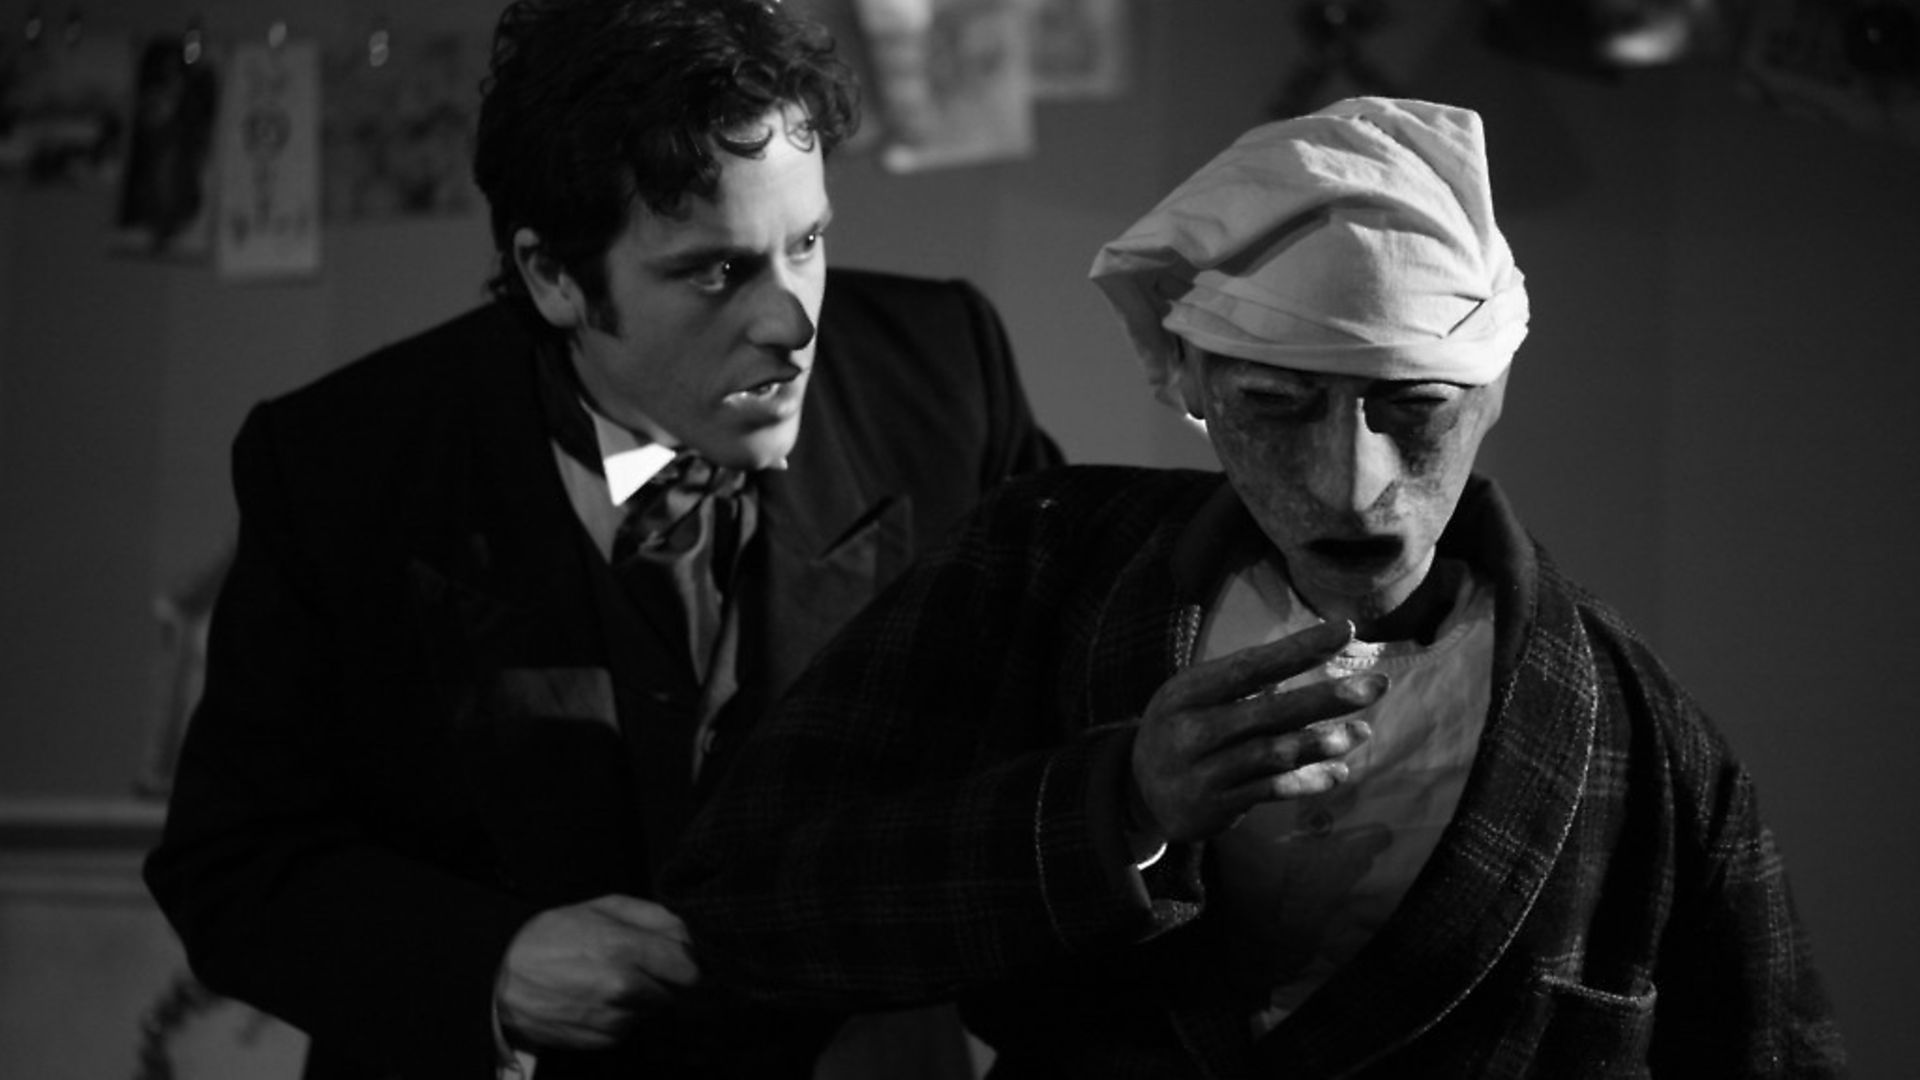 Dominic Gerrard in A Christmas Carol at the Charles Dickens Museum. - Credit: Archant